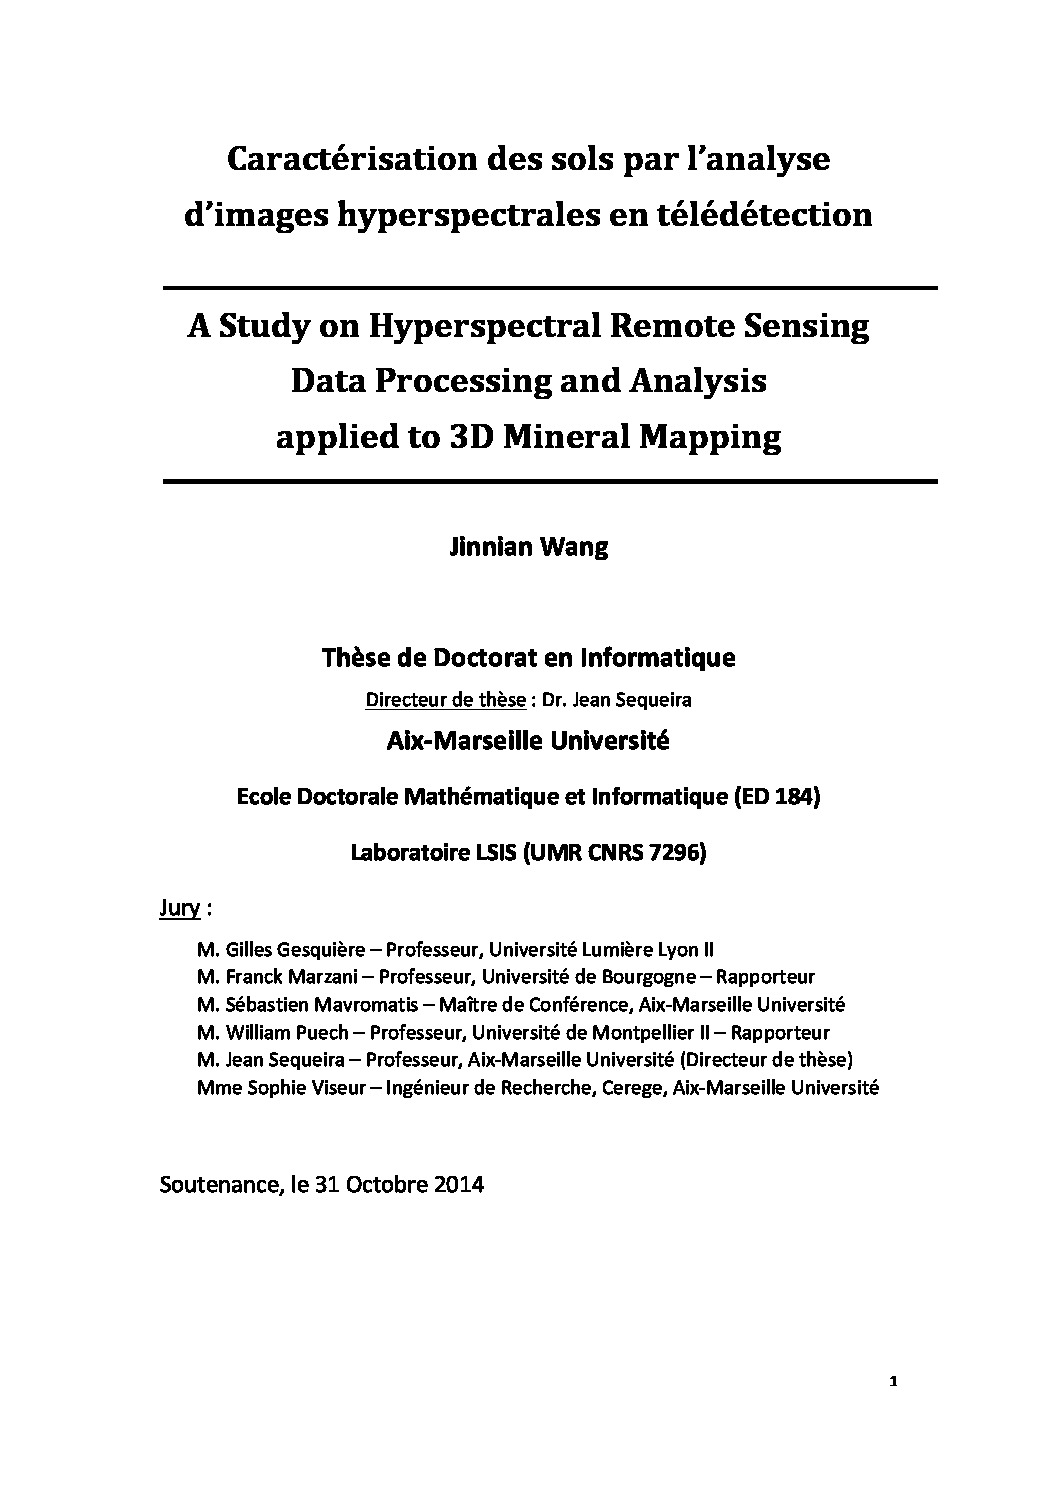 thumbnail of A-Study-on-Hyperspectral-Remote-Sensing-Data-Processing